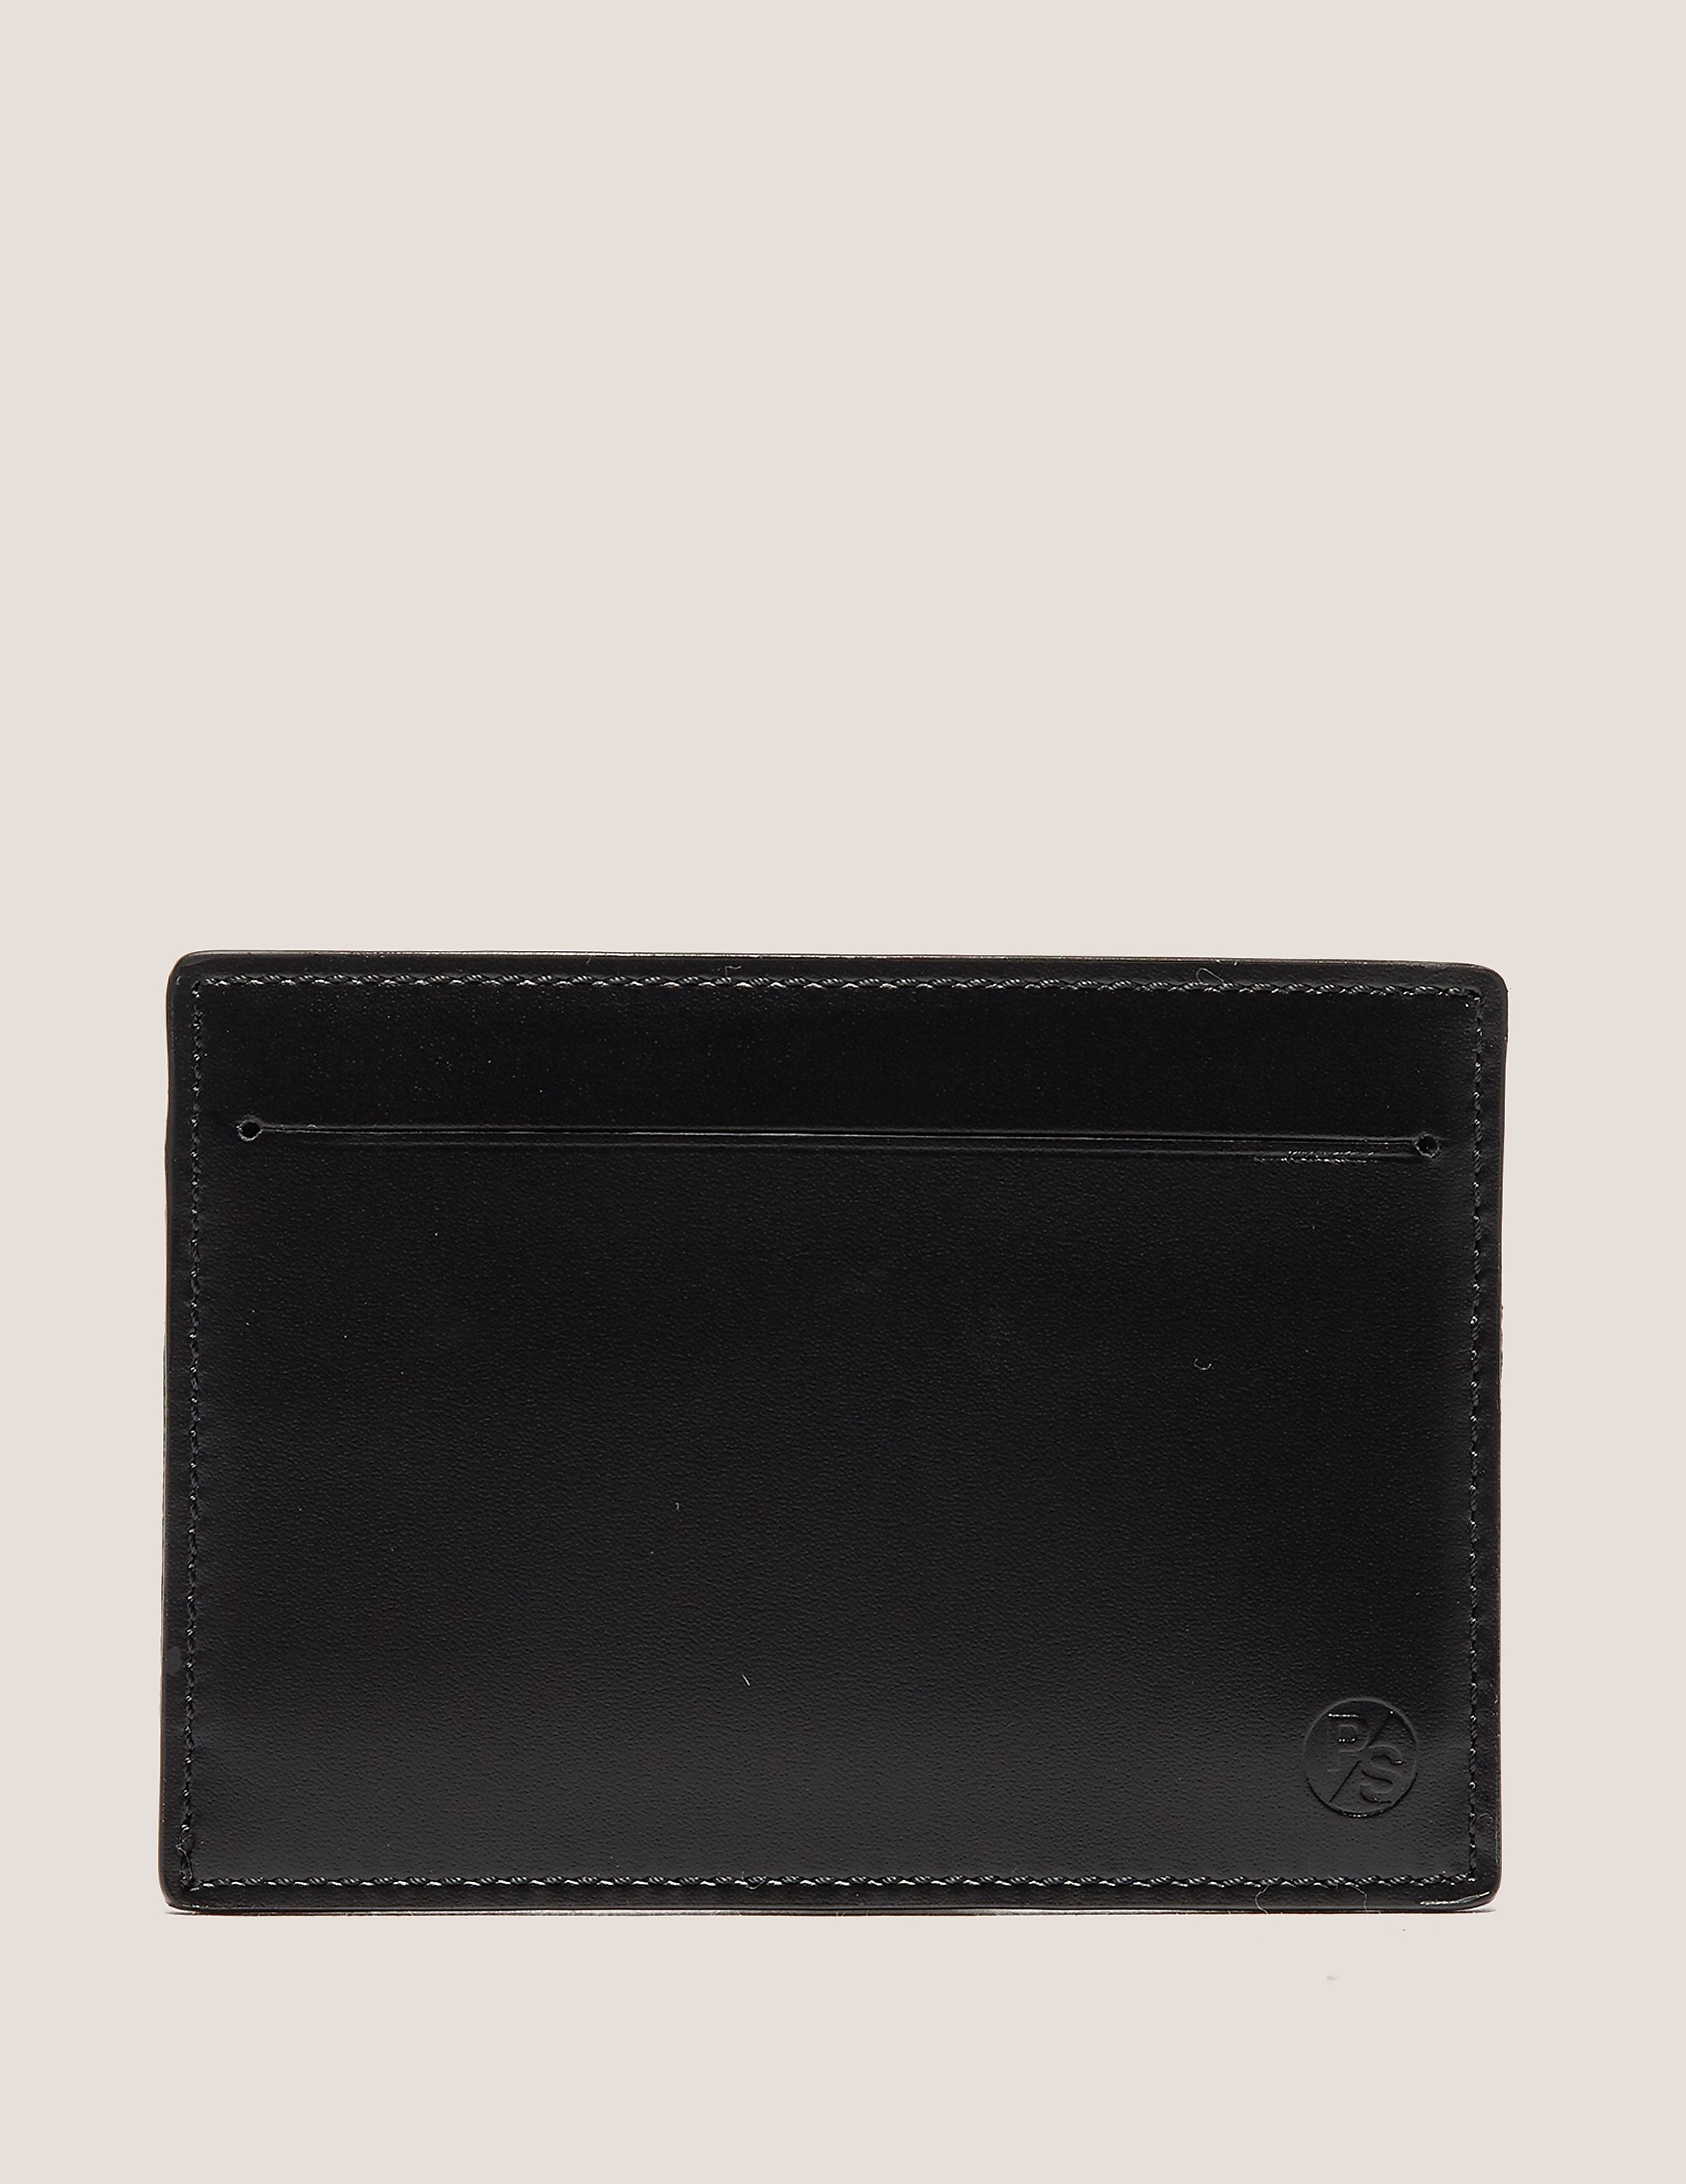 Paul Smith Pens Print Credit Card Holder